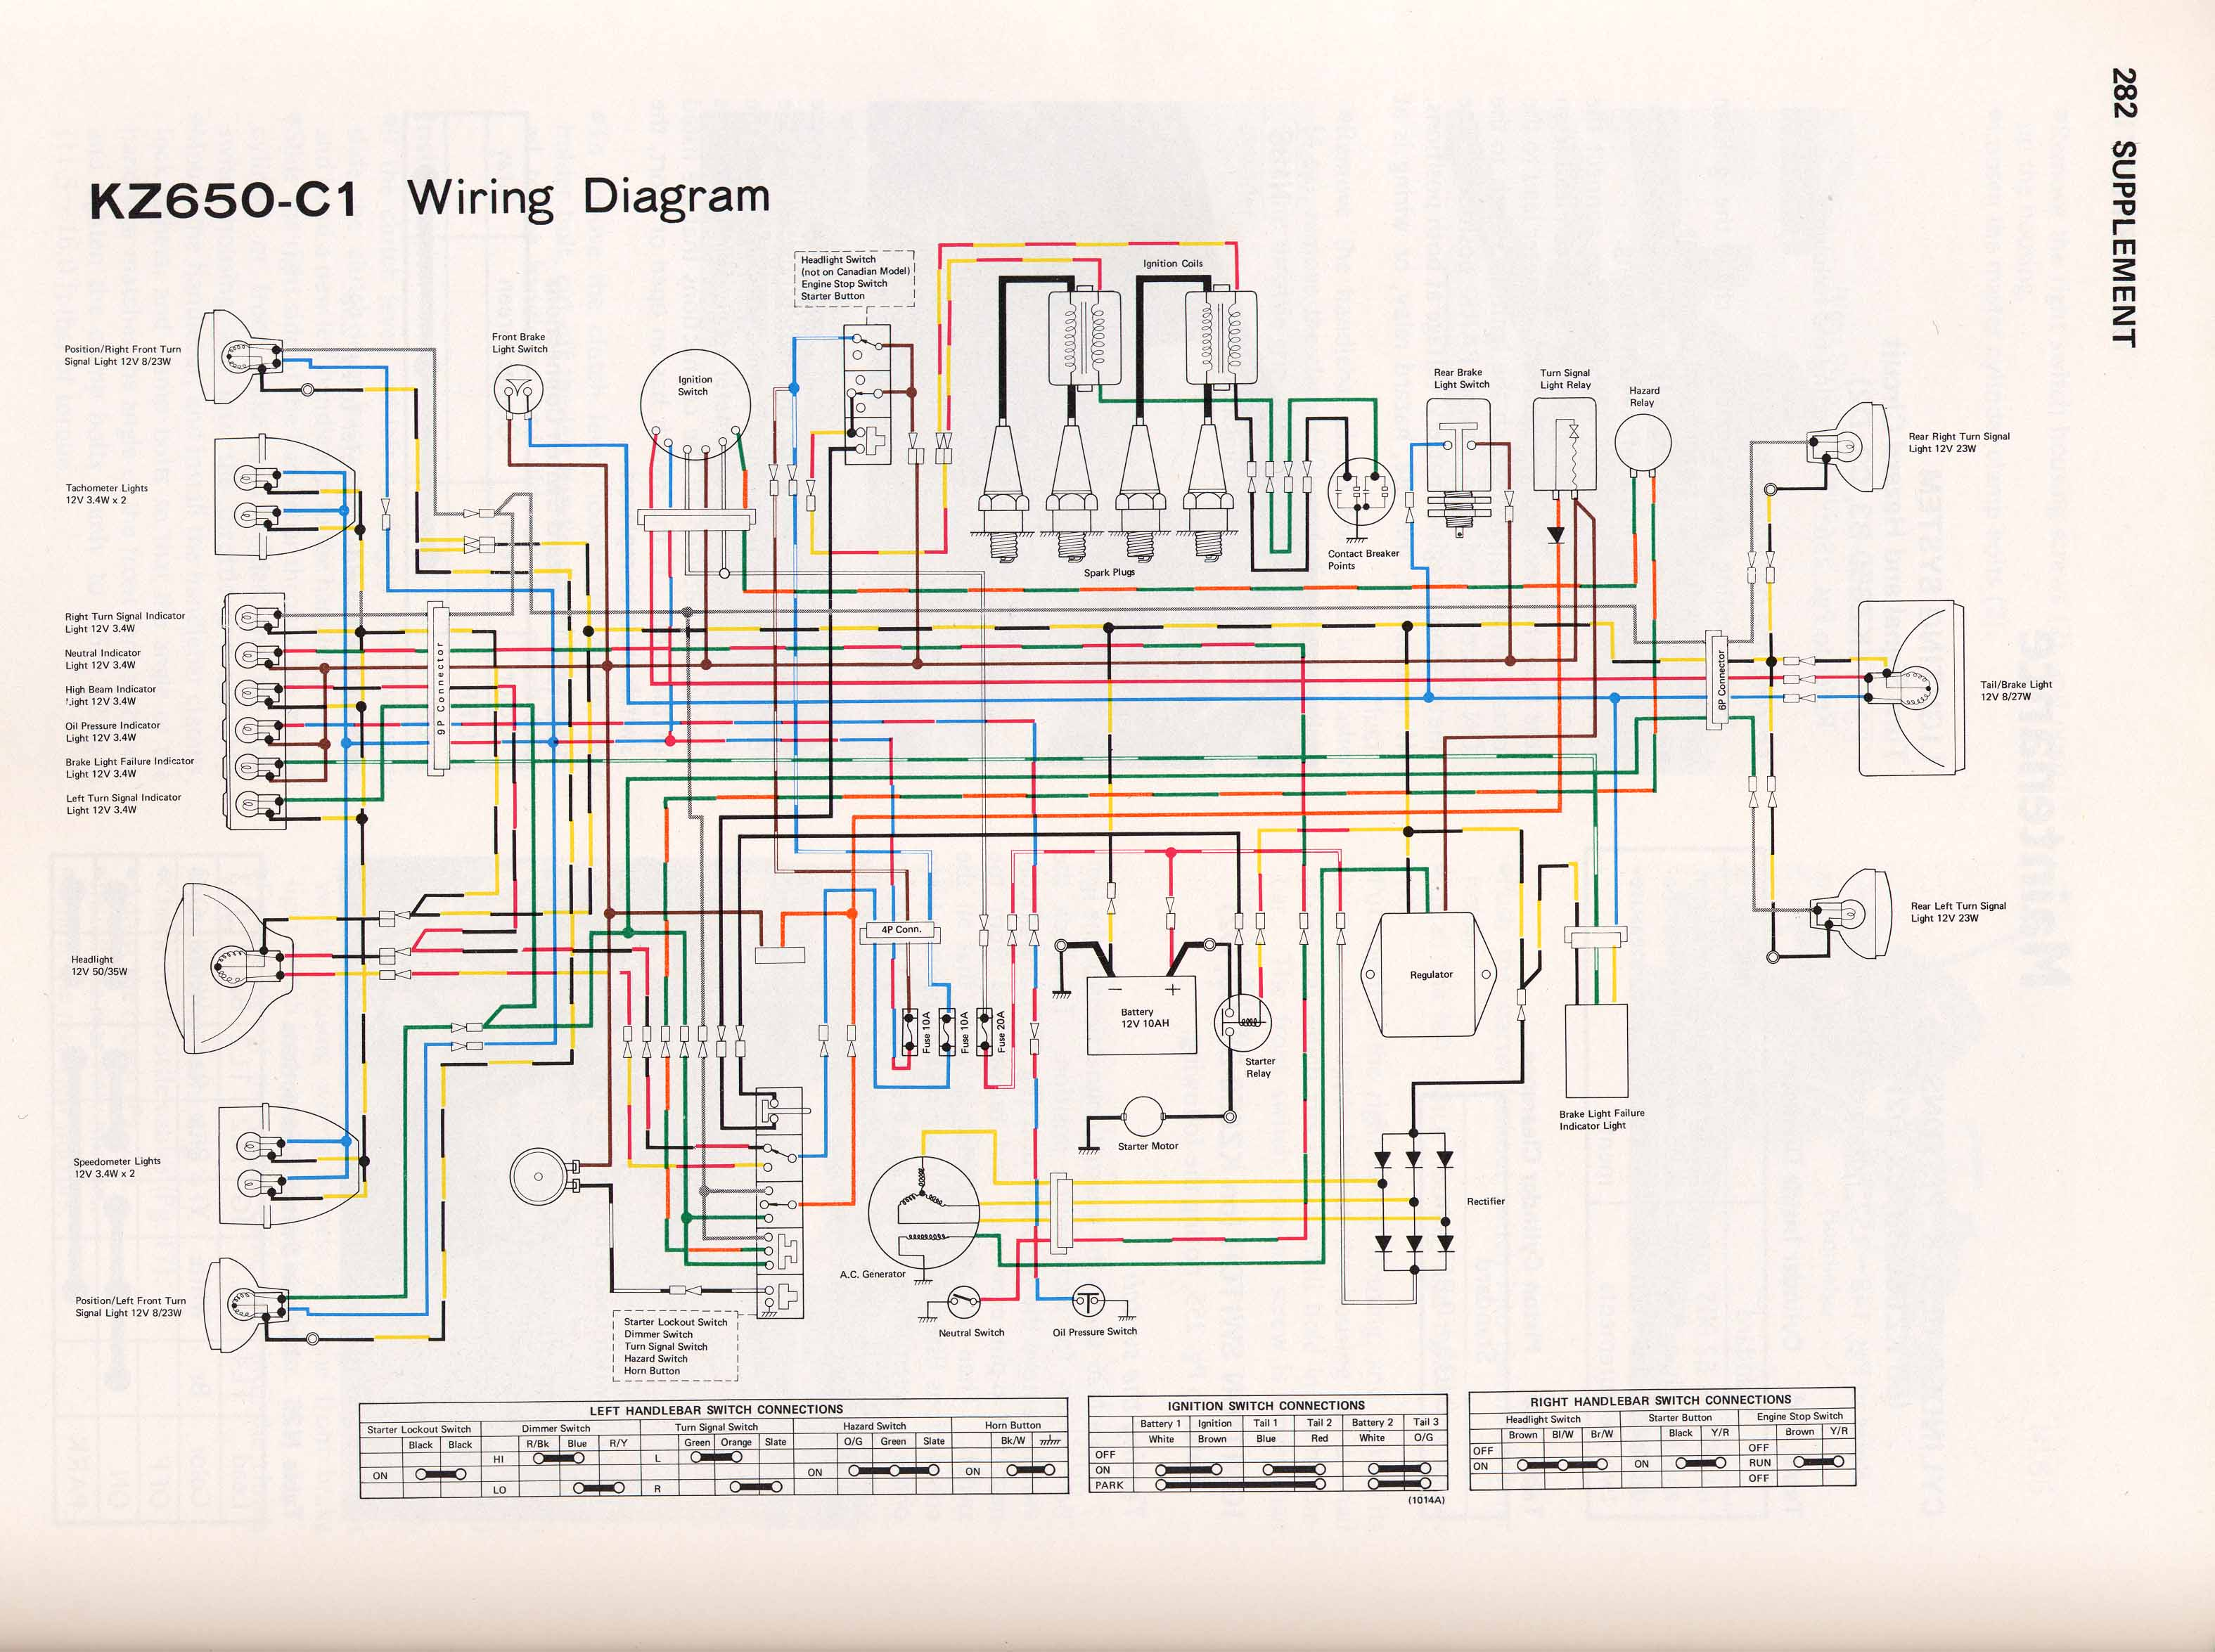 KZ650 C1 kawasaki kz650 wiring diagram vulcan 1500 wiring diagram \u2022 free 1978 gs750 wiring diagram at edmiracle.co